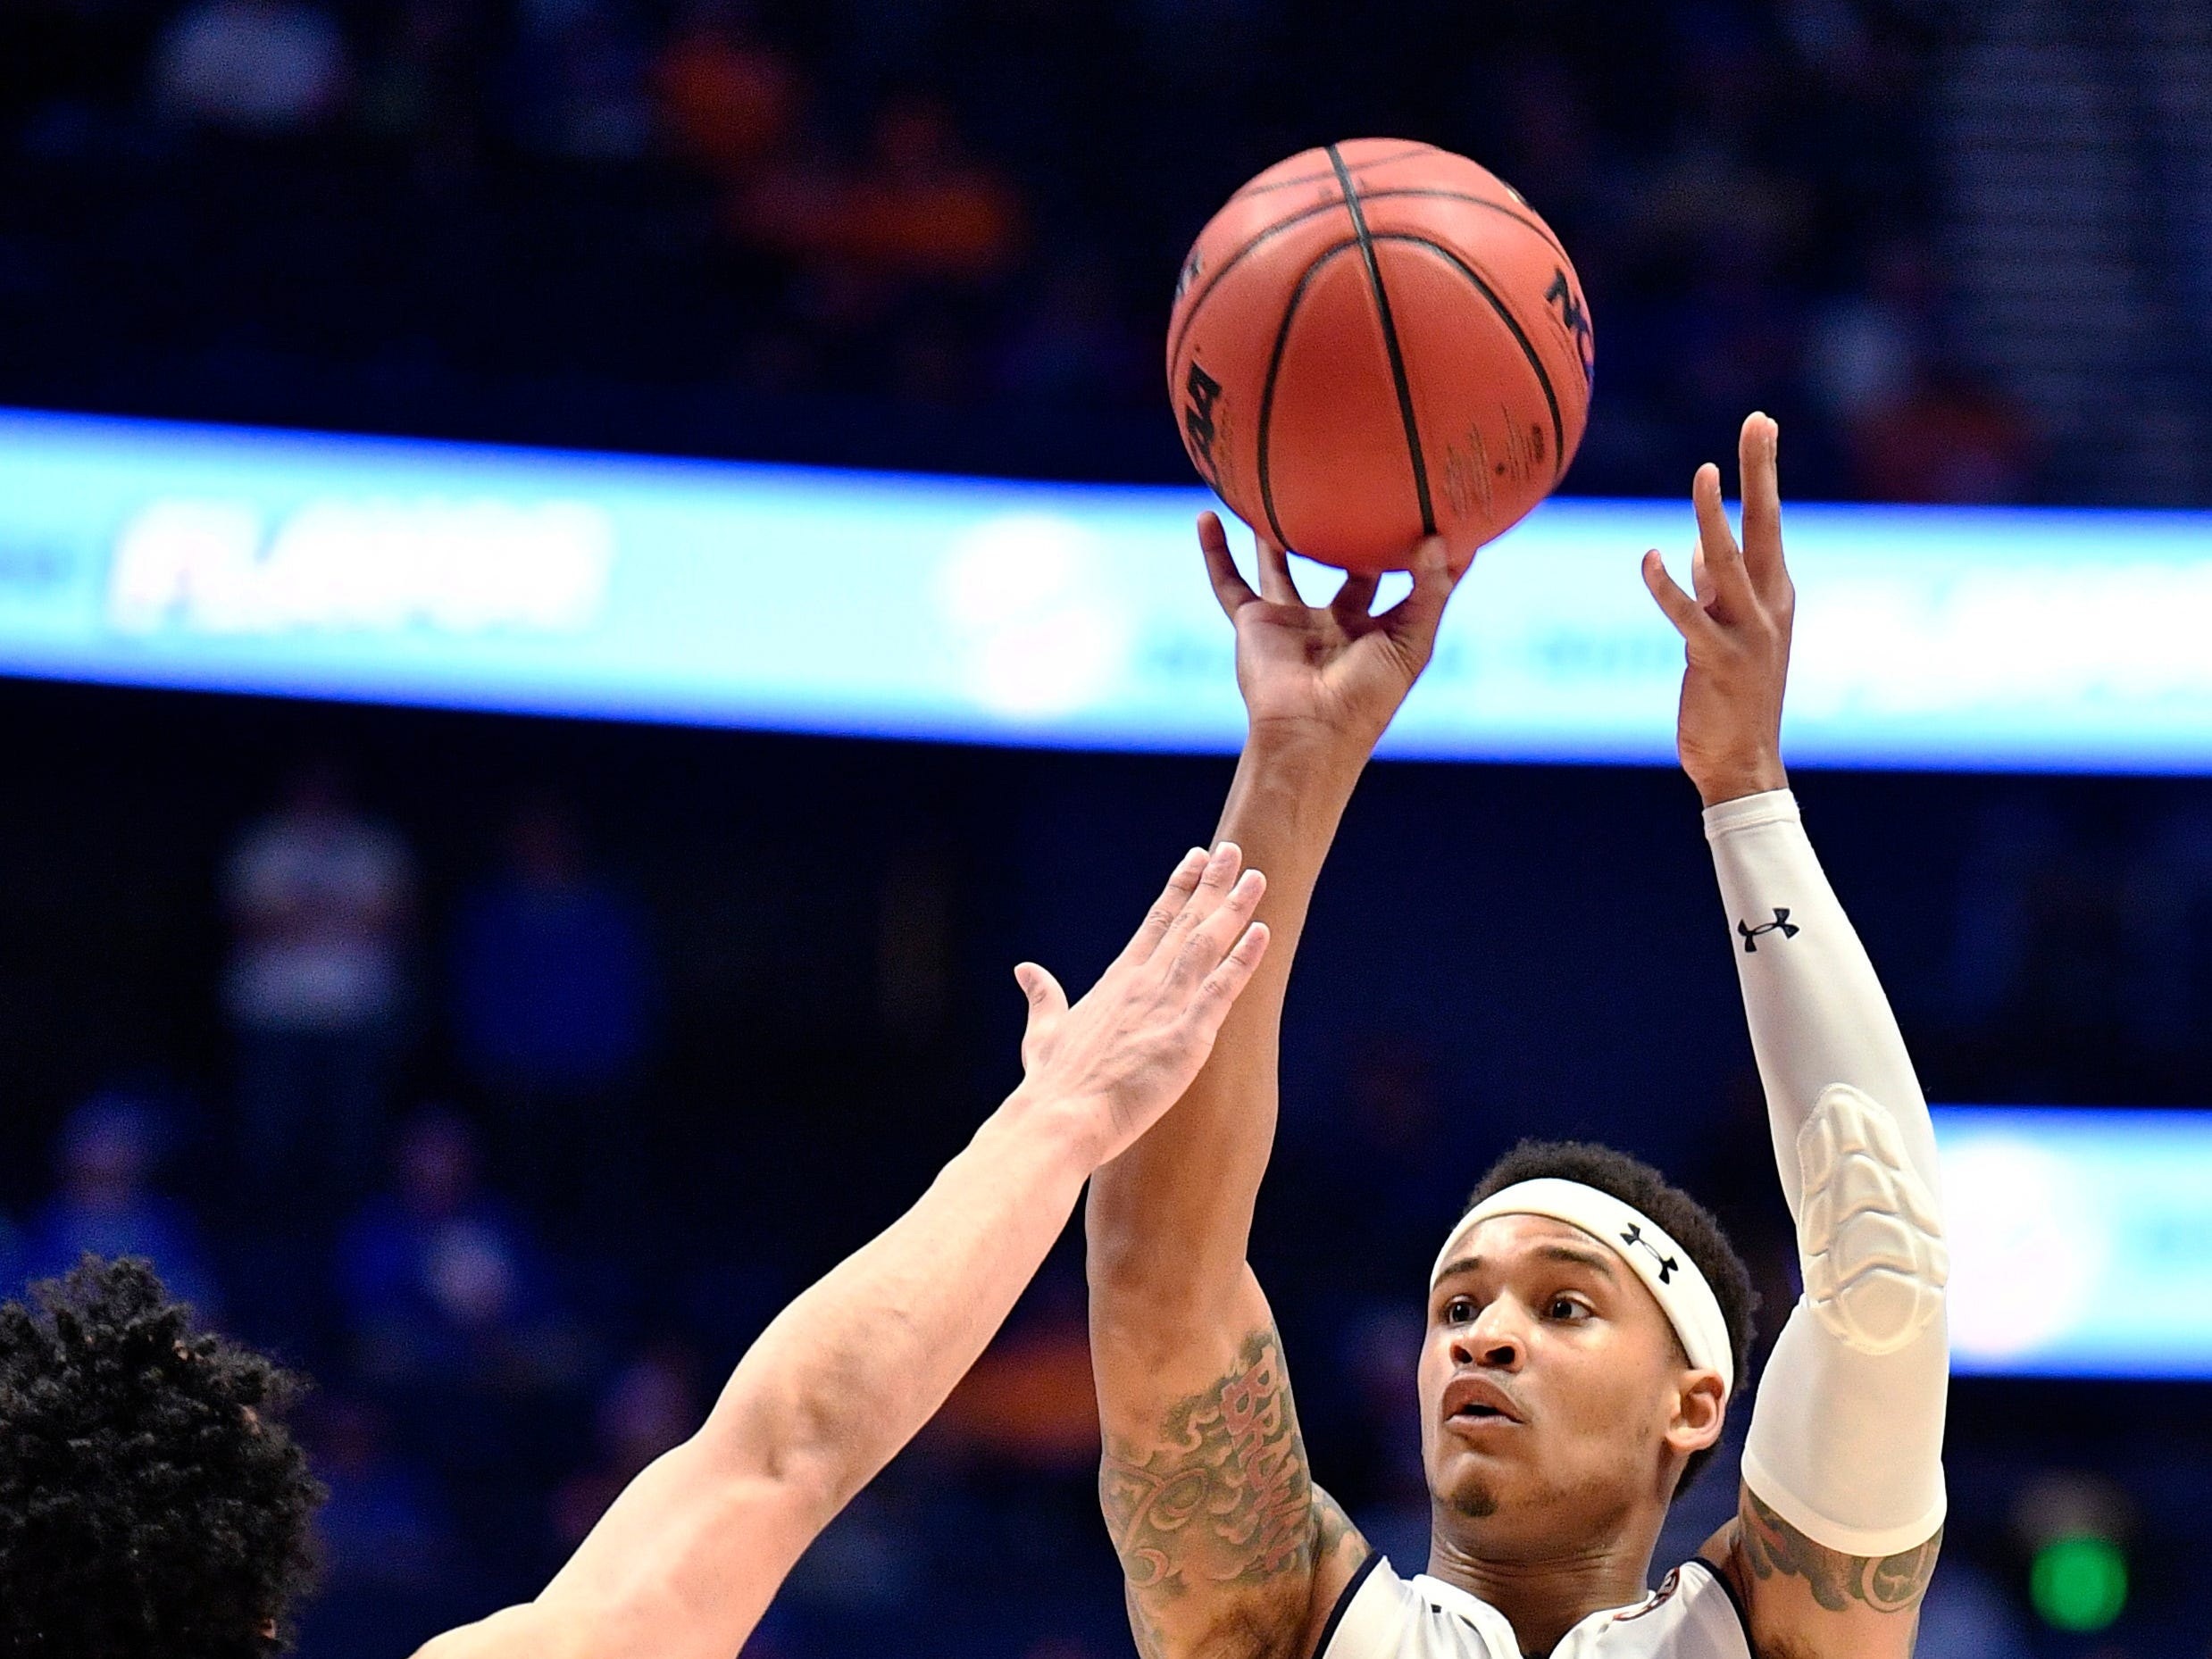 Auburn guard Bryce Brown (2) goes up for a shot defended by Florida guard Andrew Nembhard (2) during the second half of the SEC Men's Basketball Tournament game at Bridgestone Arena in Nashville, Tenn., Saturday, March 16, 2019.